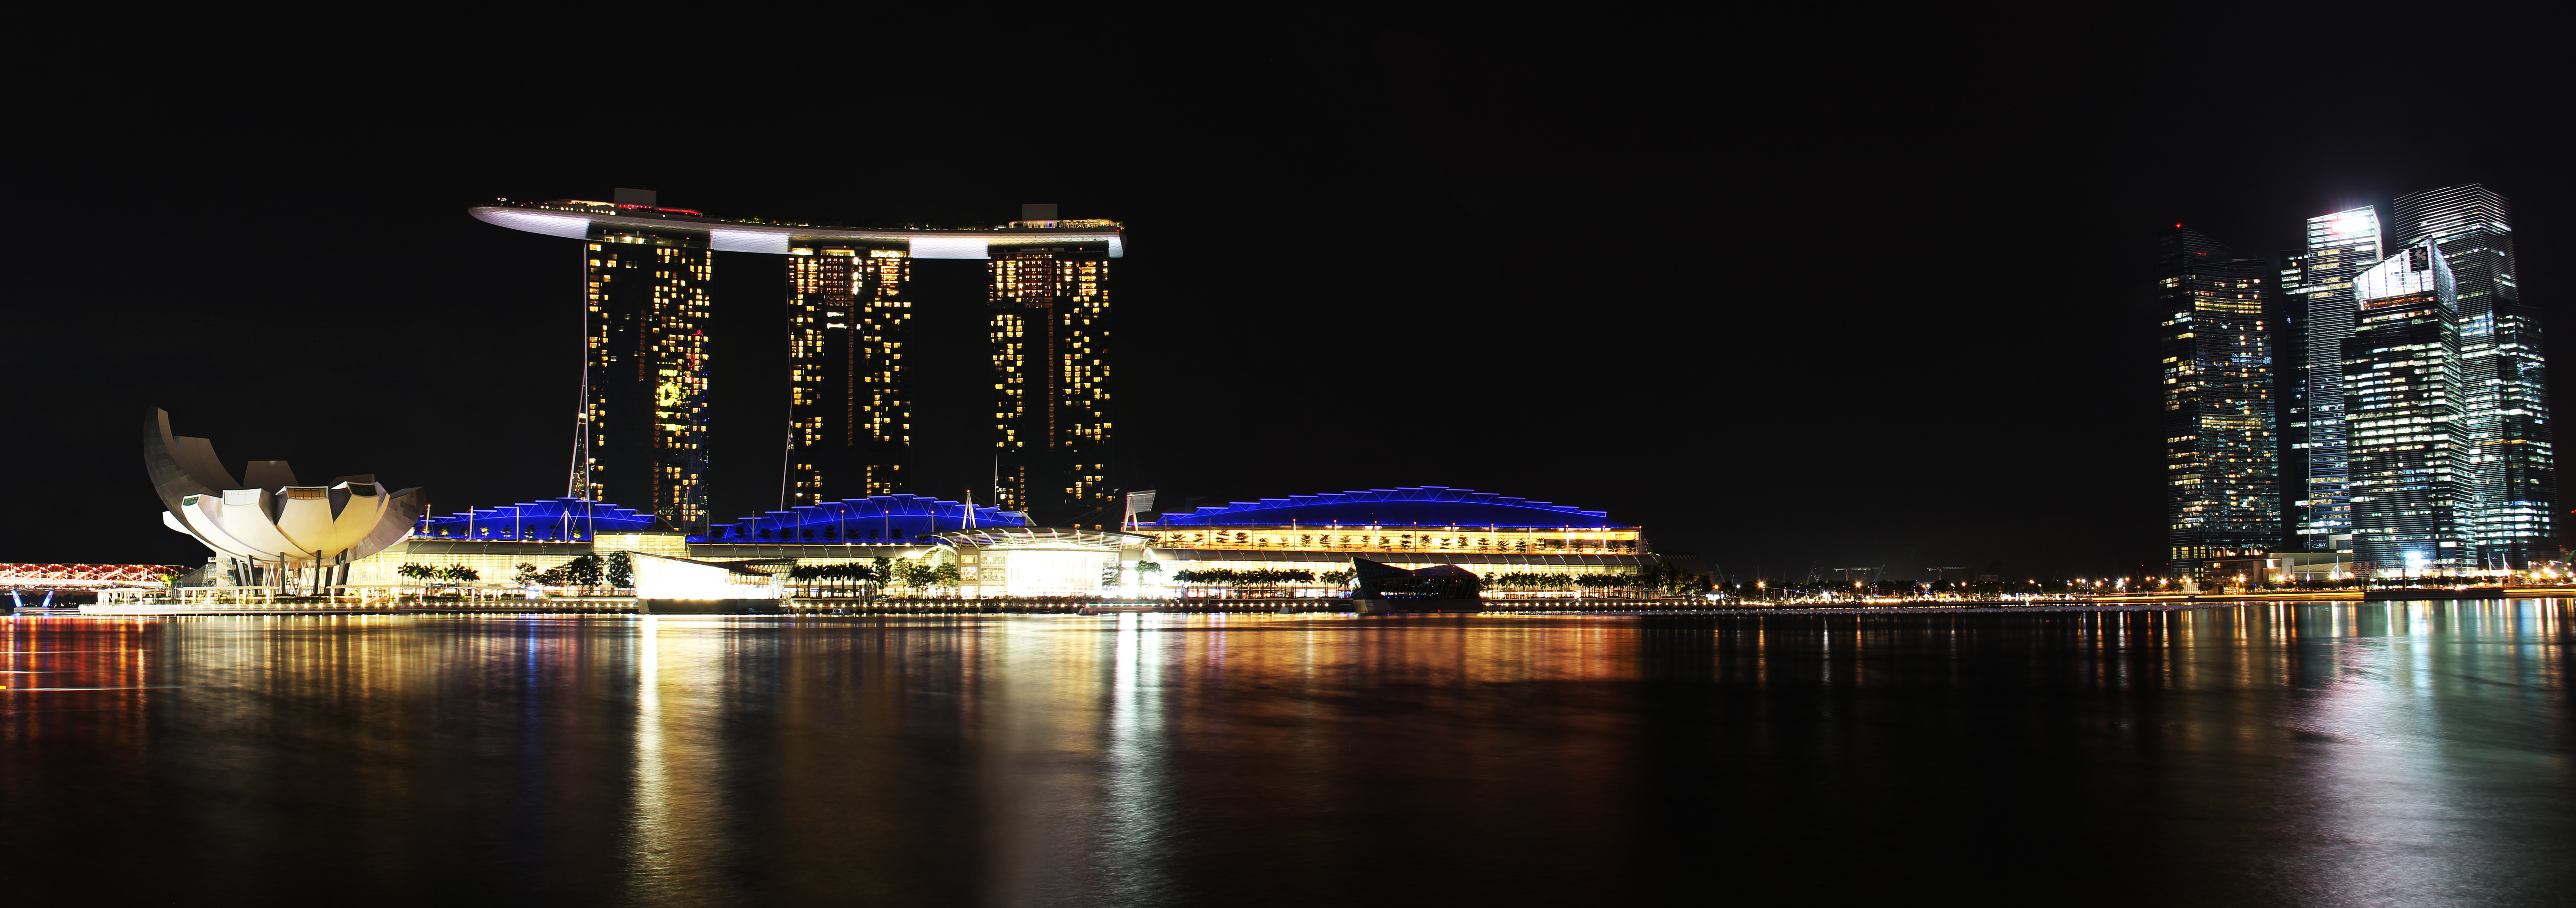 A Visit To The Top Of The Marina Bay Sands In Singapore ...